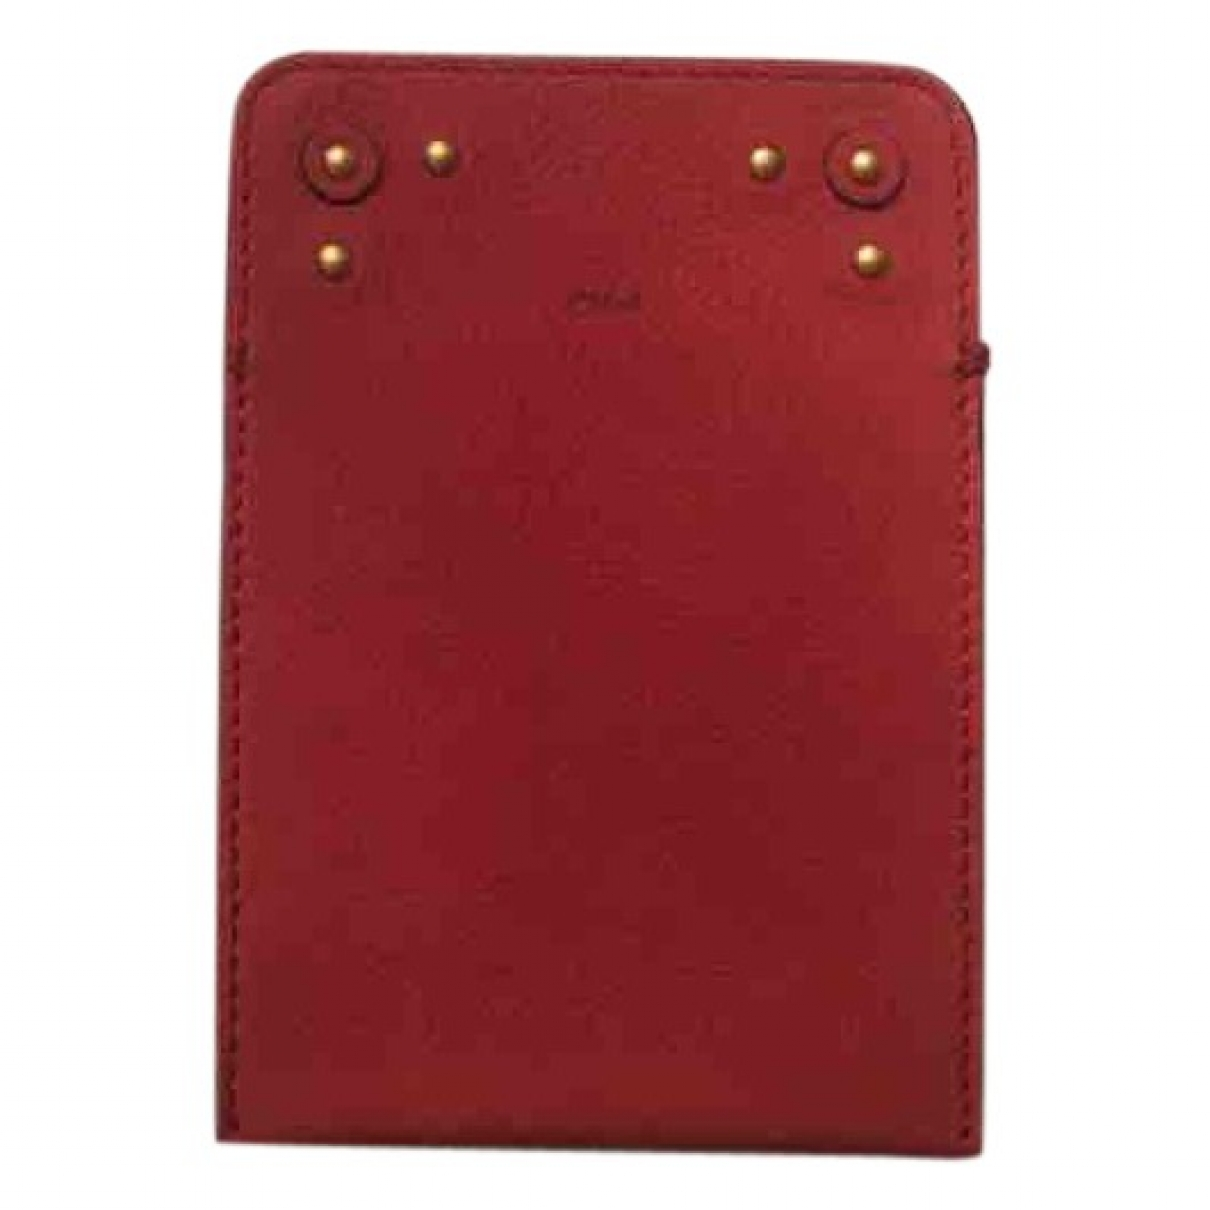 Chloé \N Red Leather Accessories for Life & Living \N